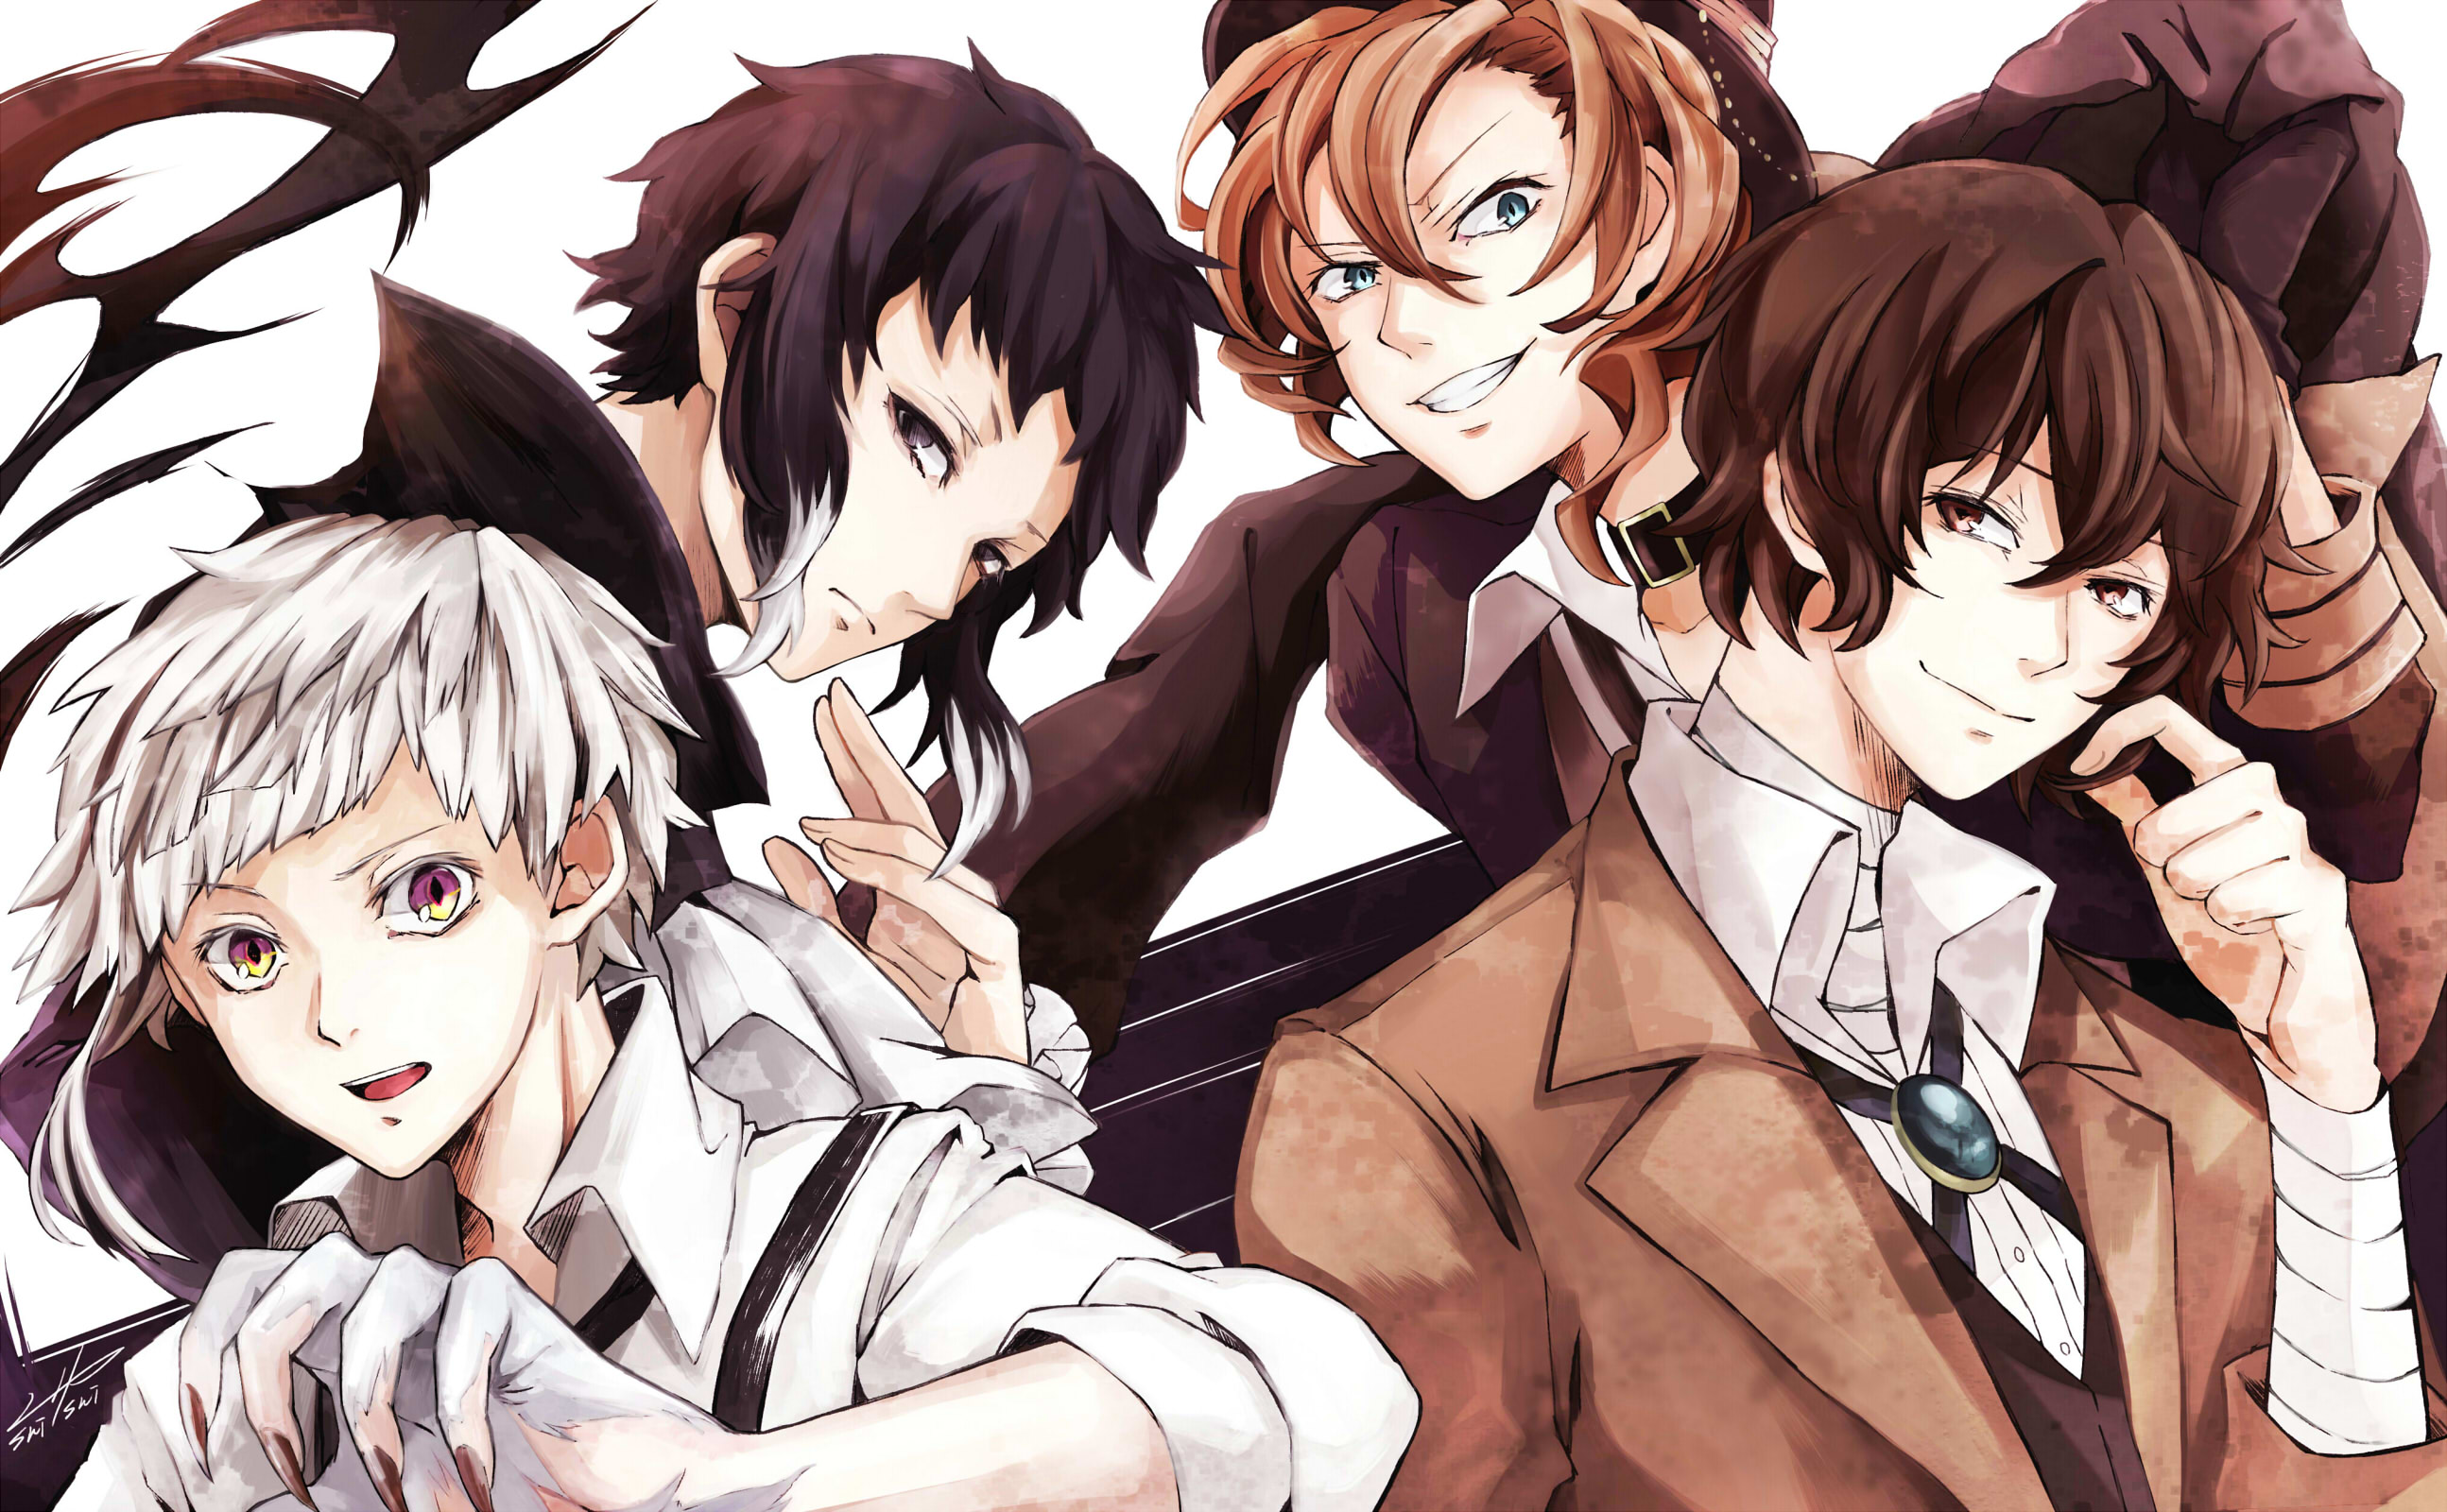 View Fullsize Bungou Stray Dogs Image Bungou Stray Dogs Wallpaper 4k 205429 Hd Wallpaper Backgrounds Download